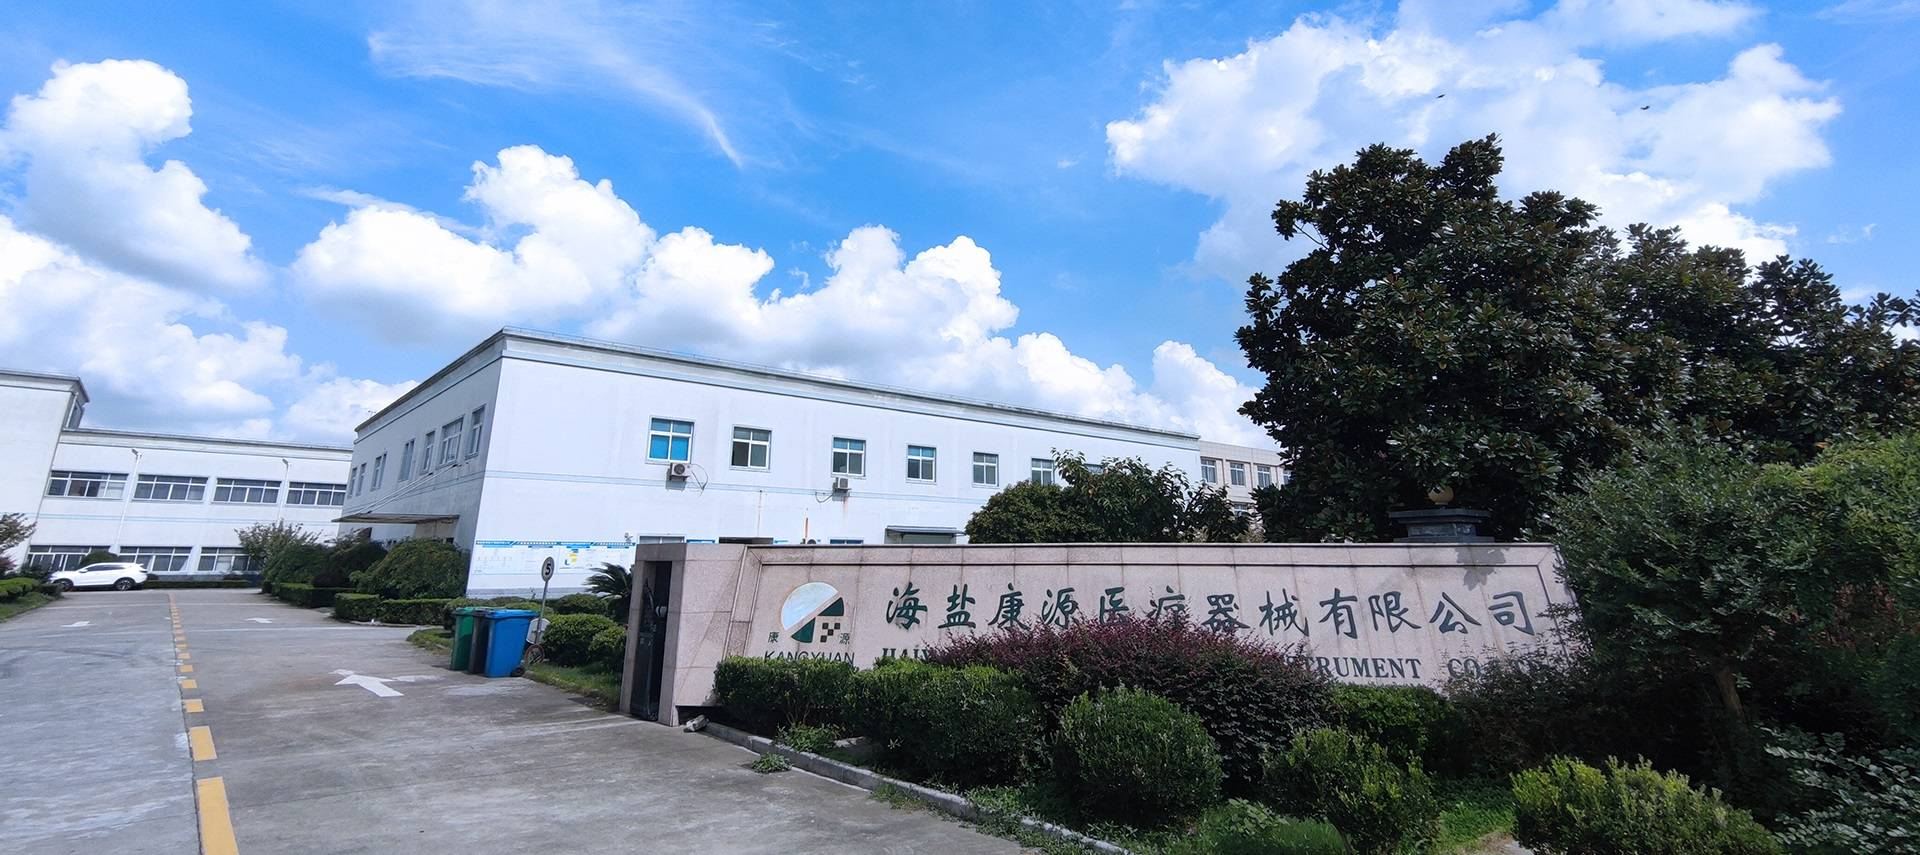 Haiyan Kangyuan Medical Instrument Co., Ltd.